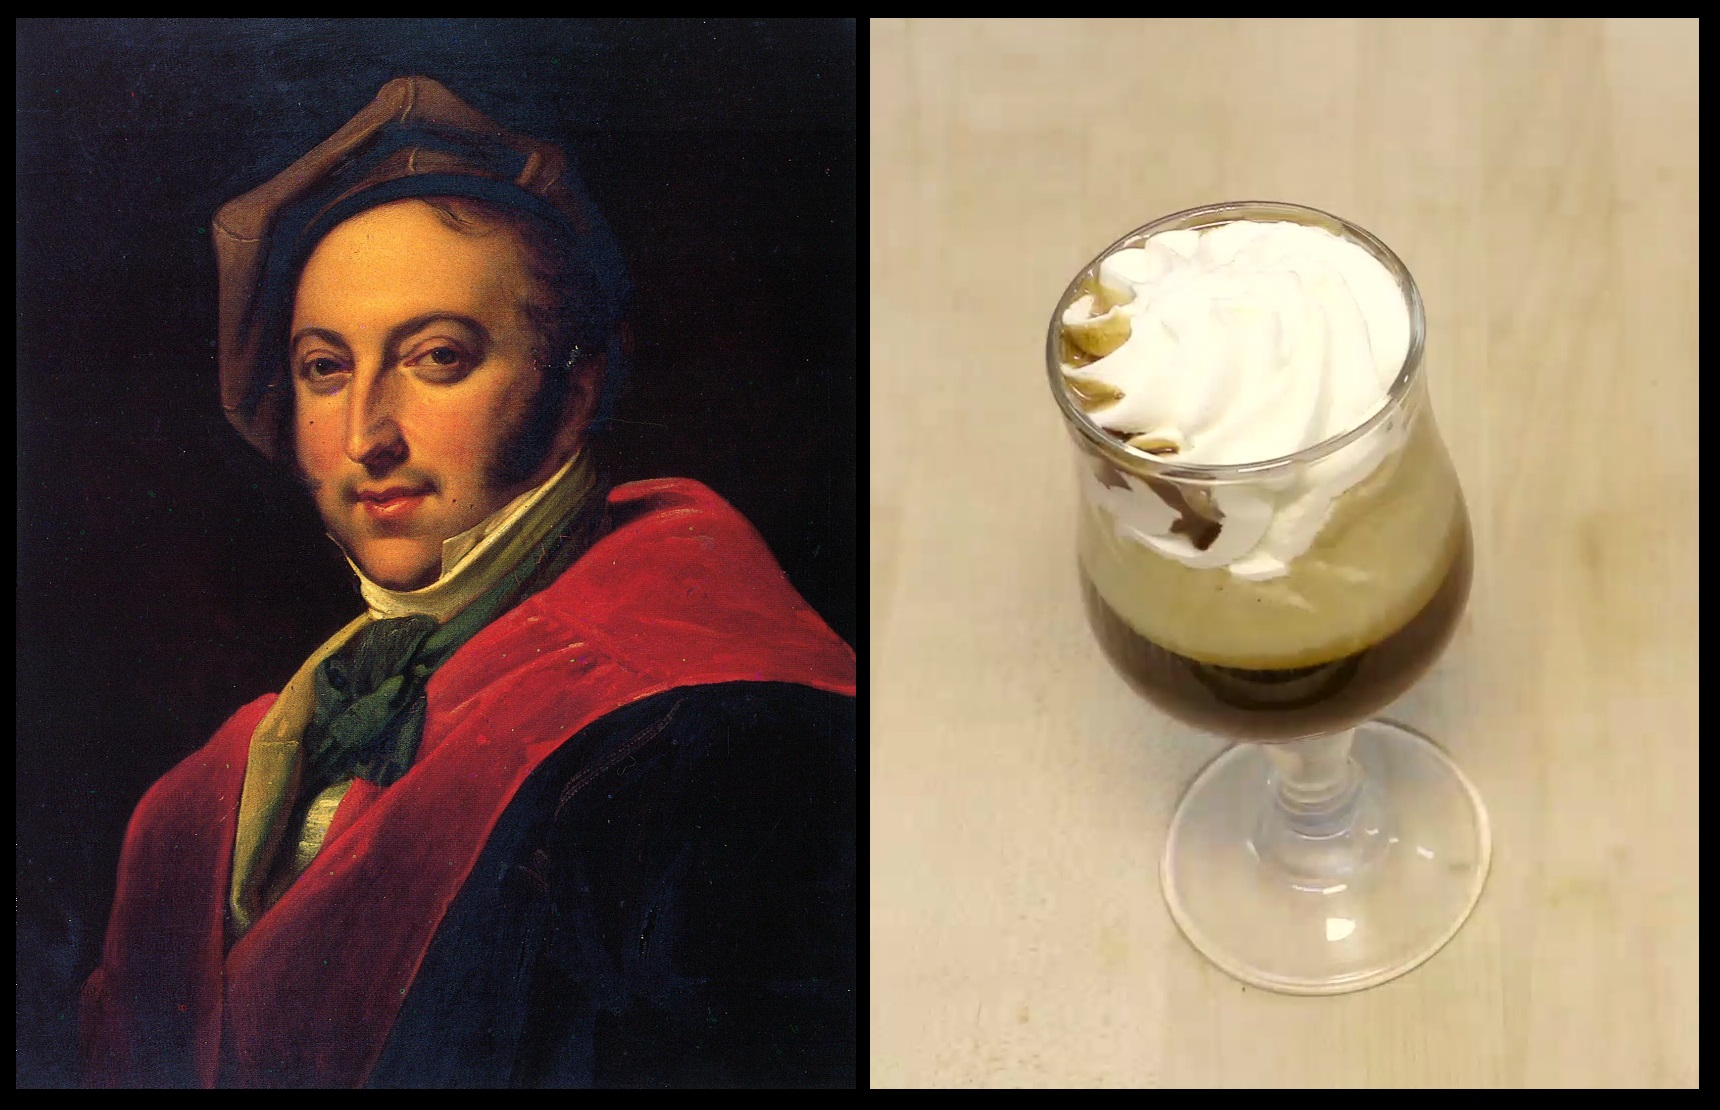 La Barbajata: the favorite coffee by Gioacchino Rossini